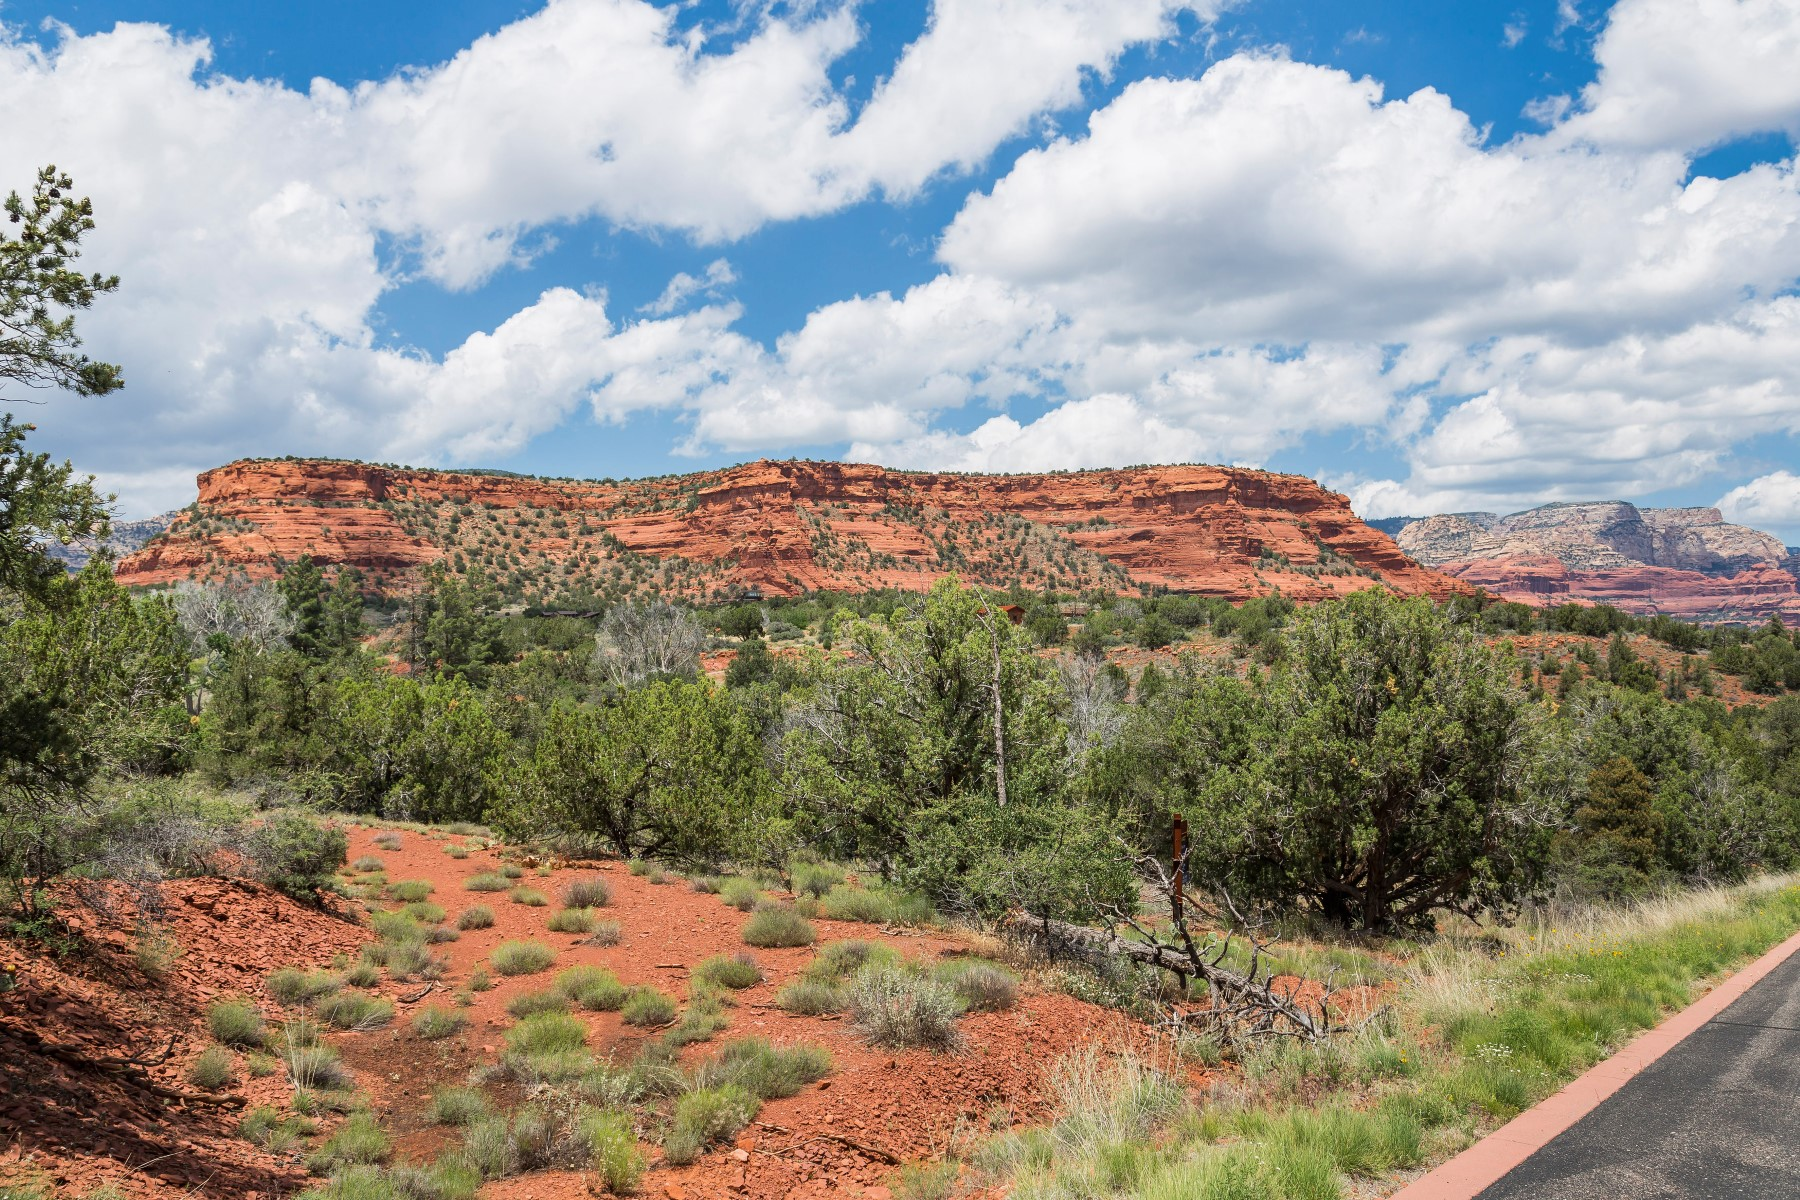 Terrain pour l Vente à Aerie Lot 20 - Gently sloped, very private lot with expansive red rock views. 150 Altair Ave 20 Sedona, Arizona, 86336 États-Unis